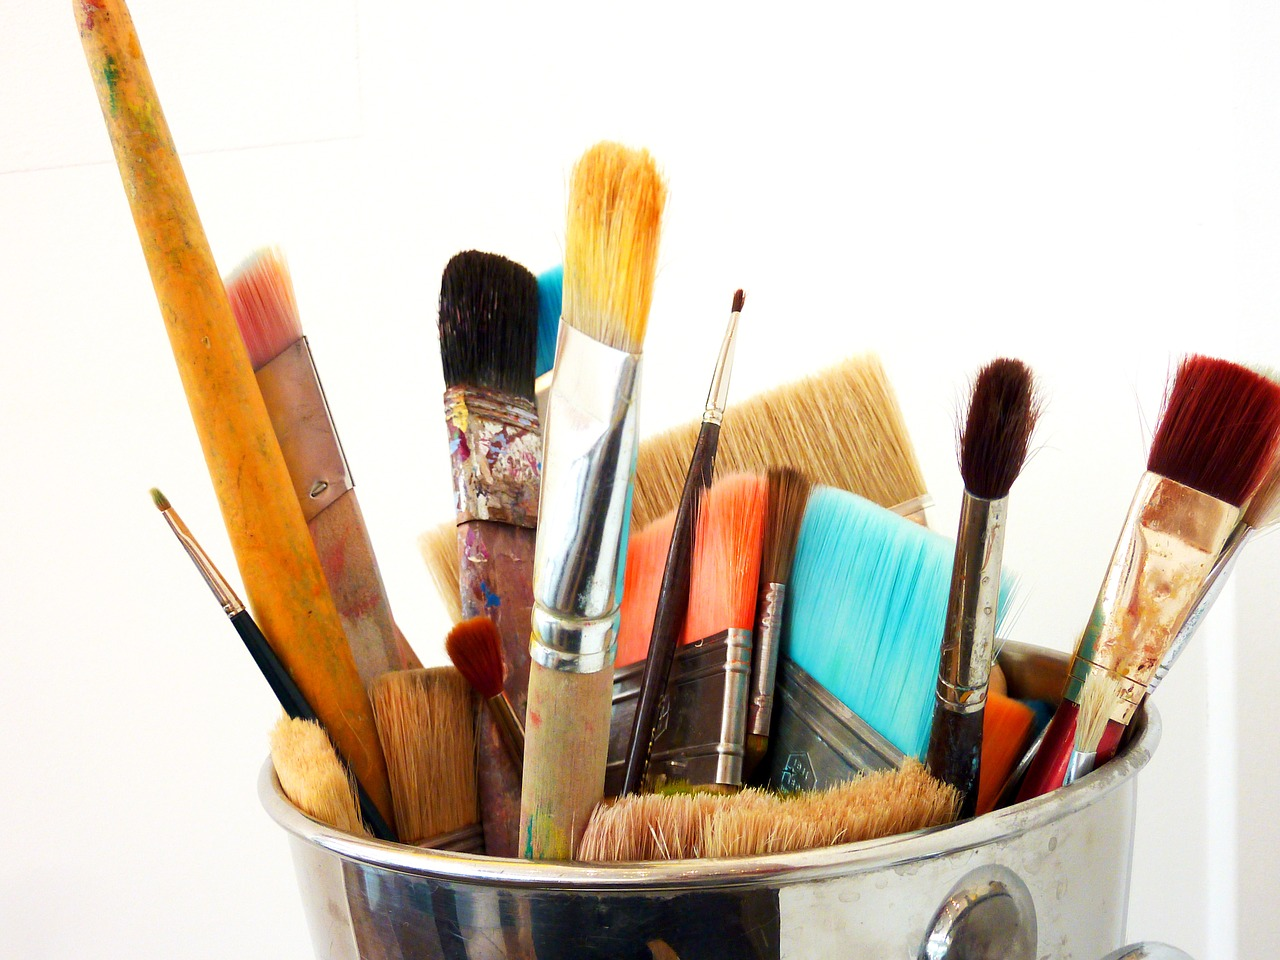 Buy on Sale to save money on Art Supplies